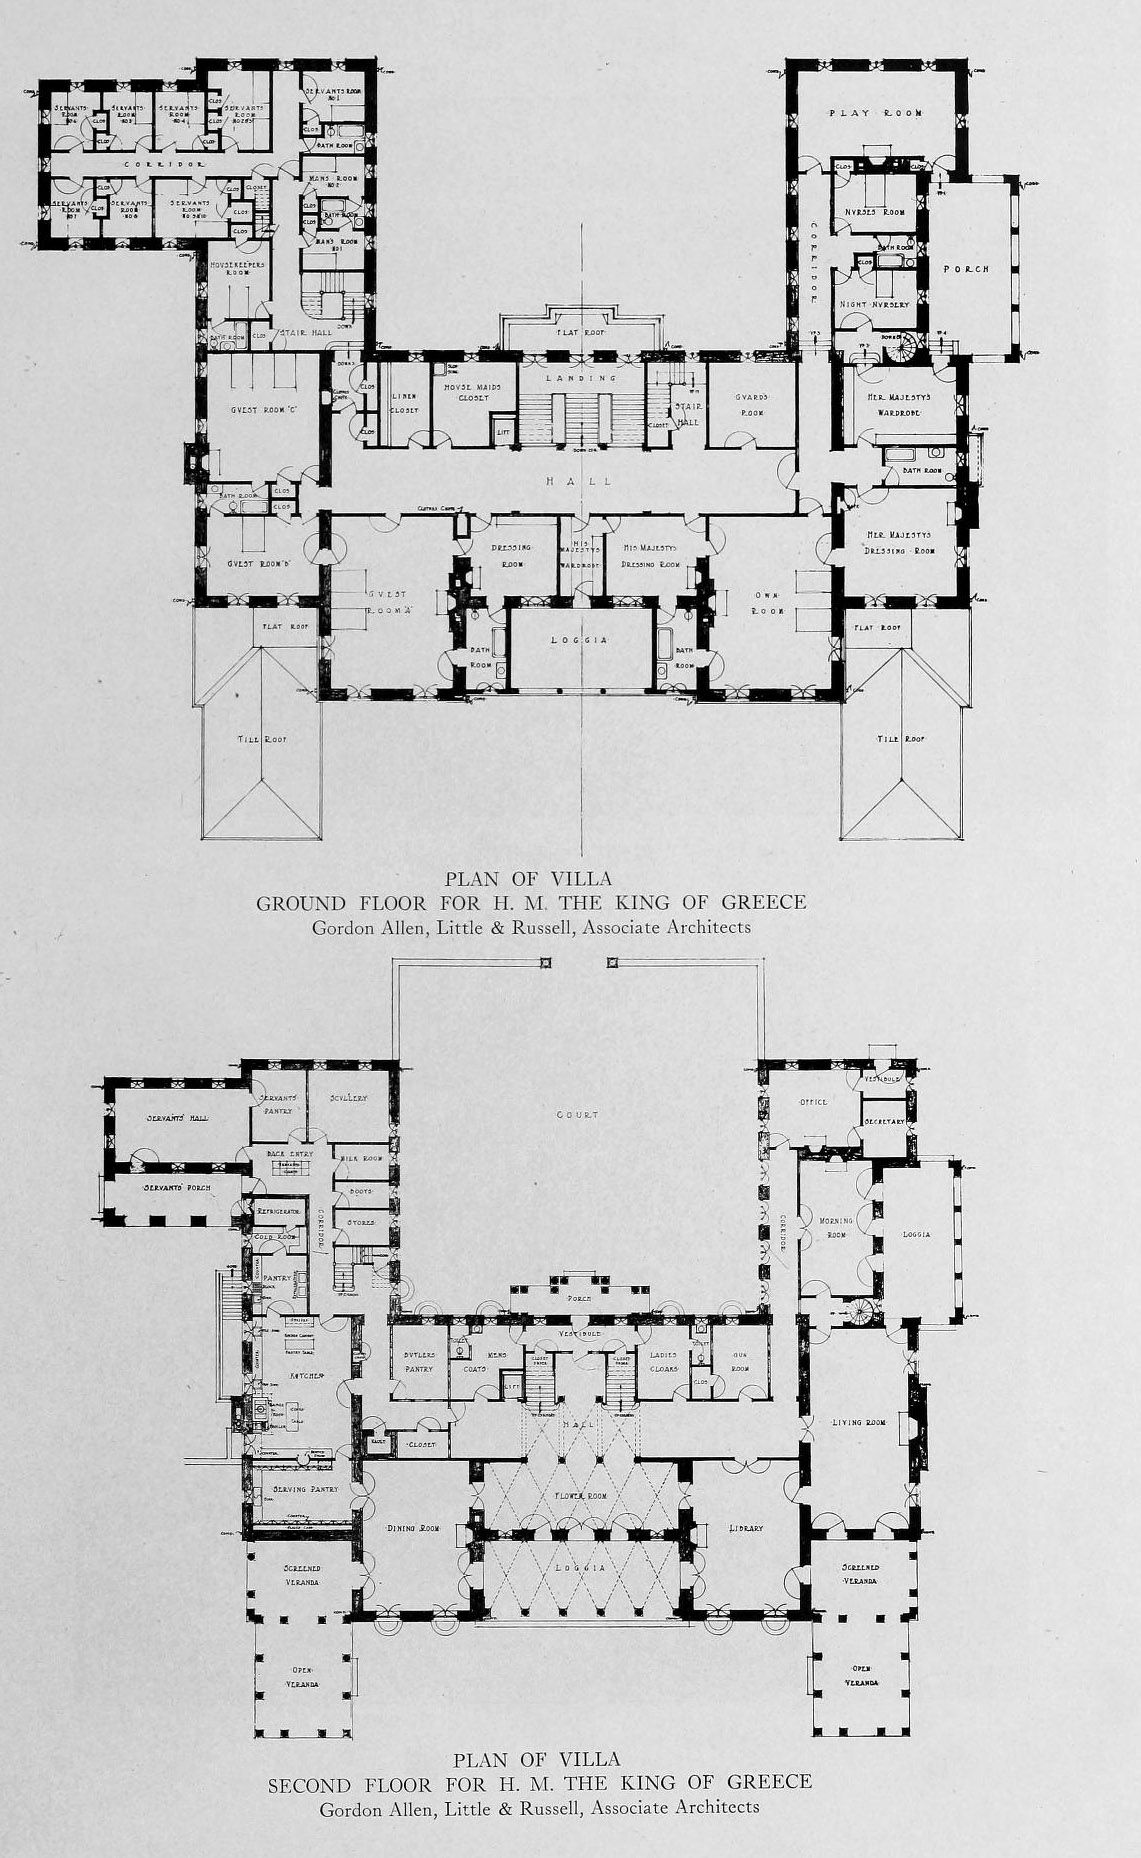 Floor Plans For A Villa For The King Of Greece Floor